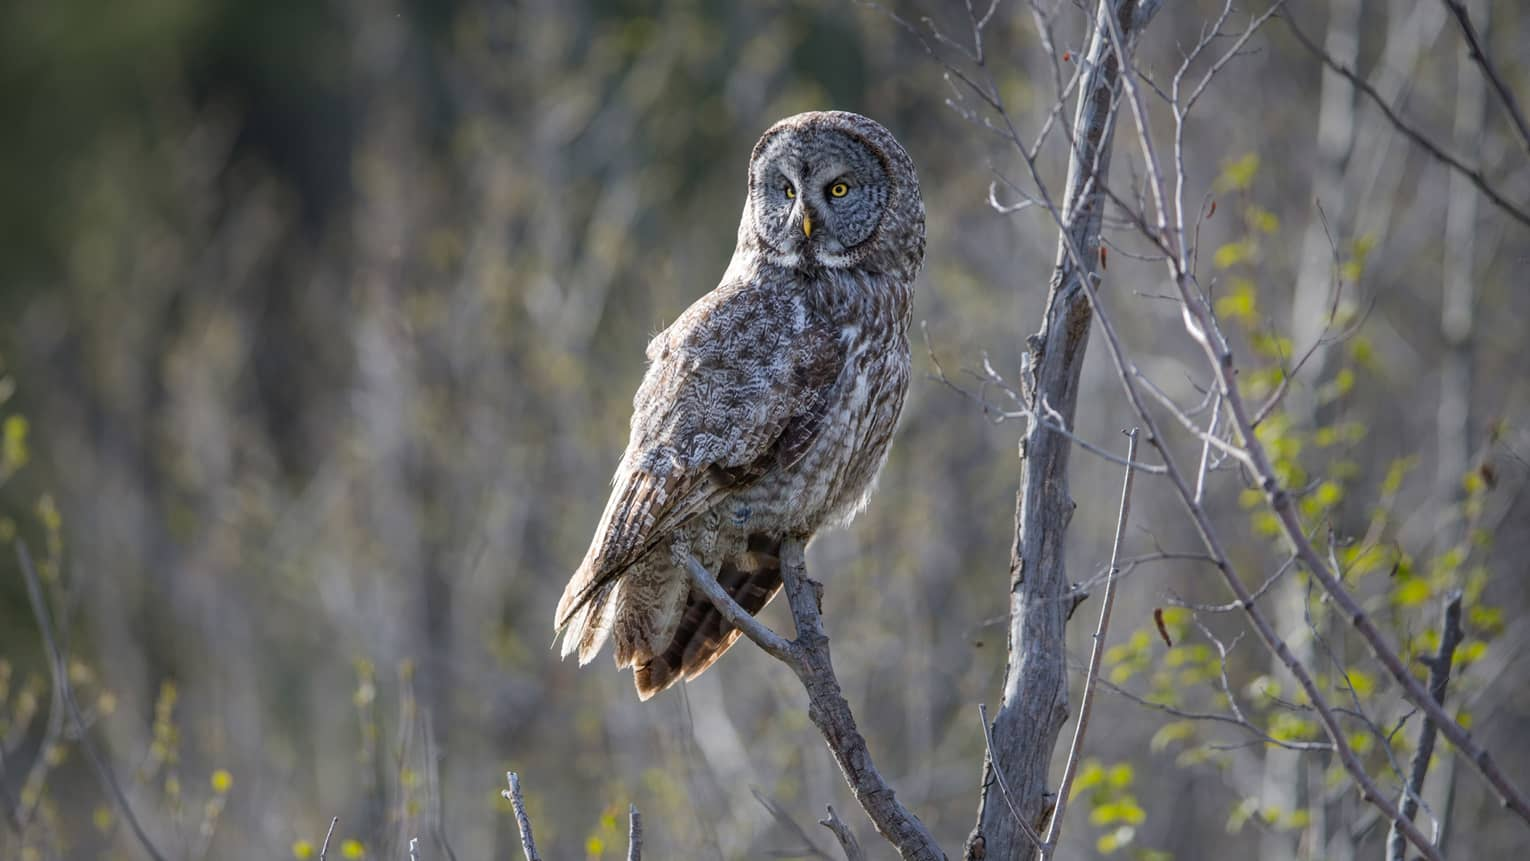 Large owl perched on branch in sunny forest